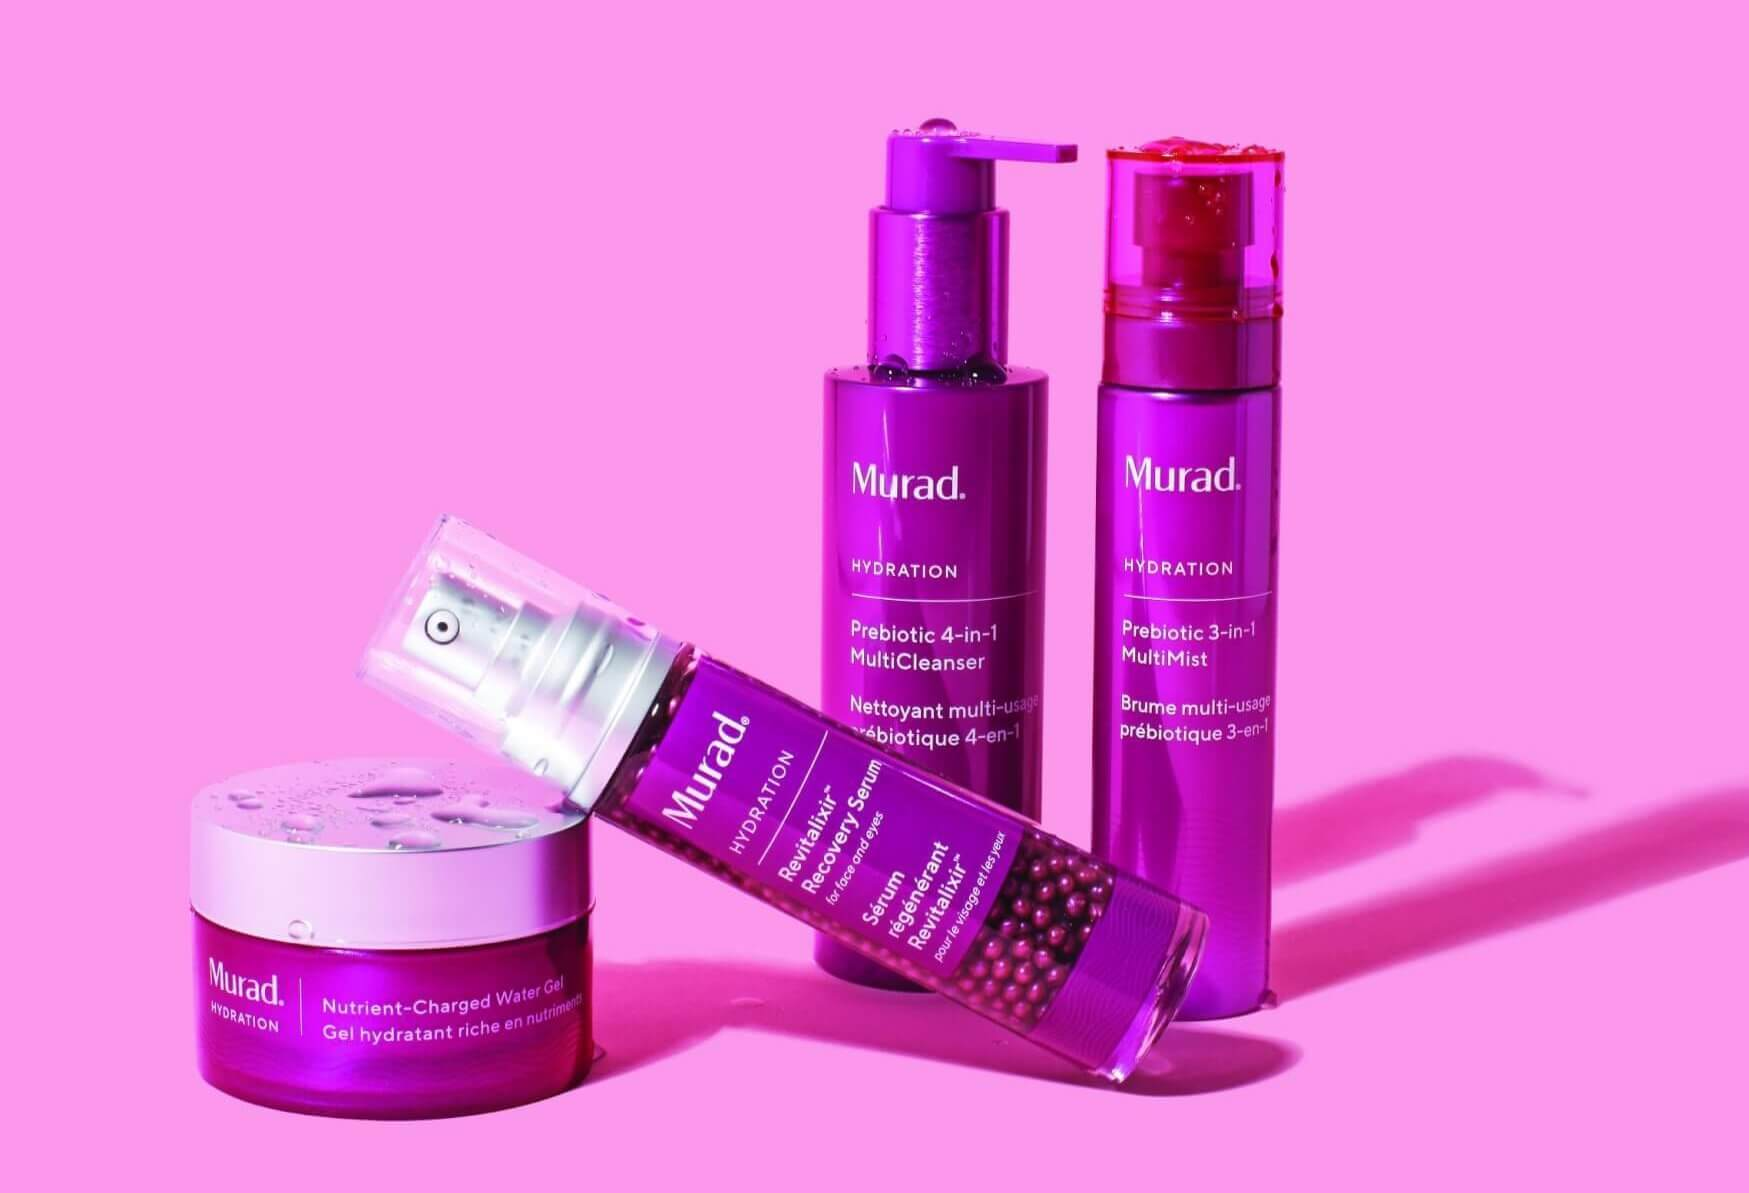 Free full-size product worth £38